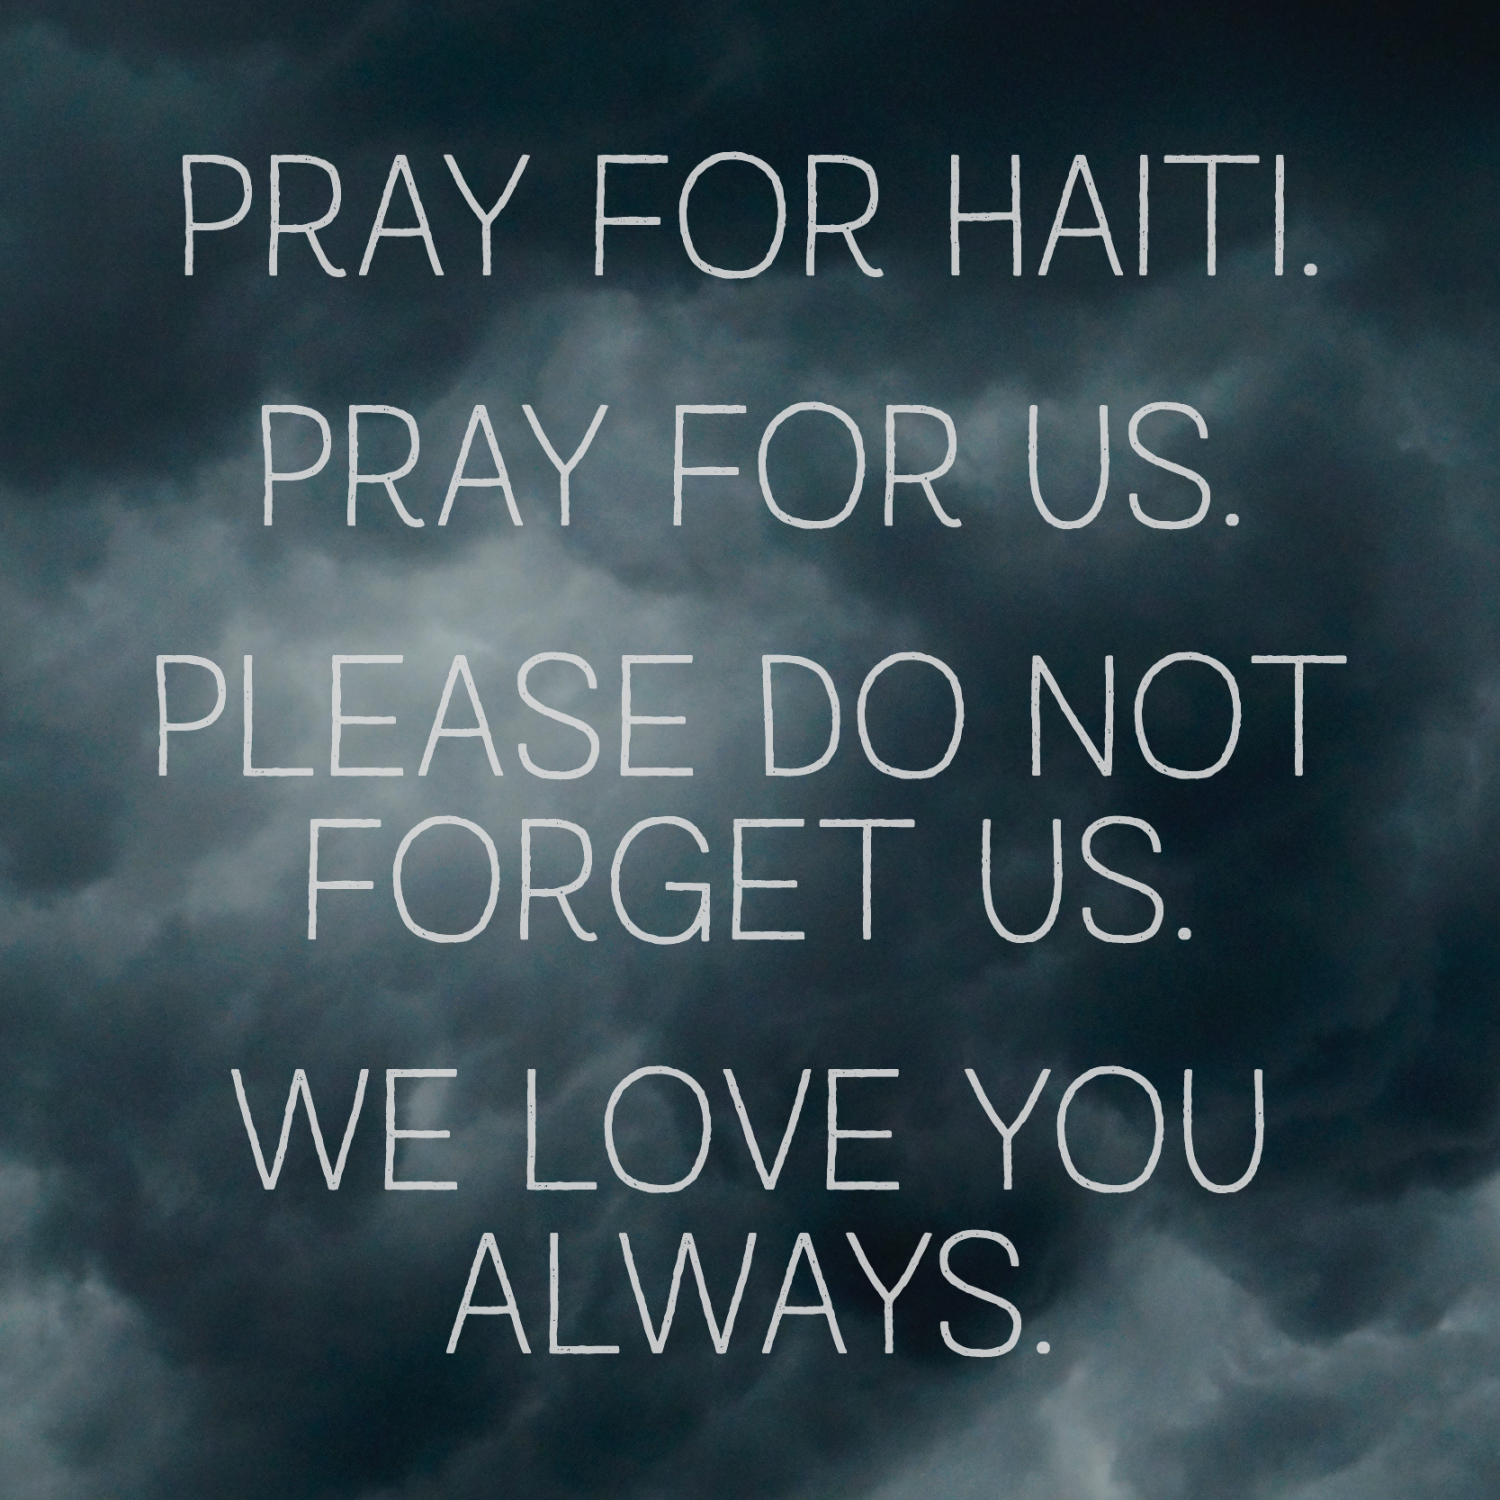 Pray for Haiti. Pray for us. Please do not forget us. We love you always.